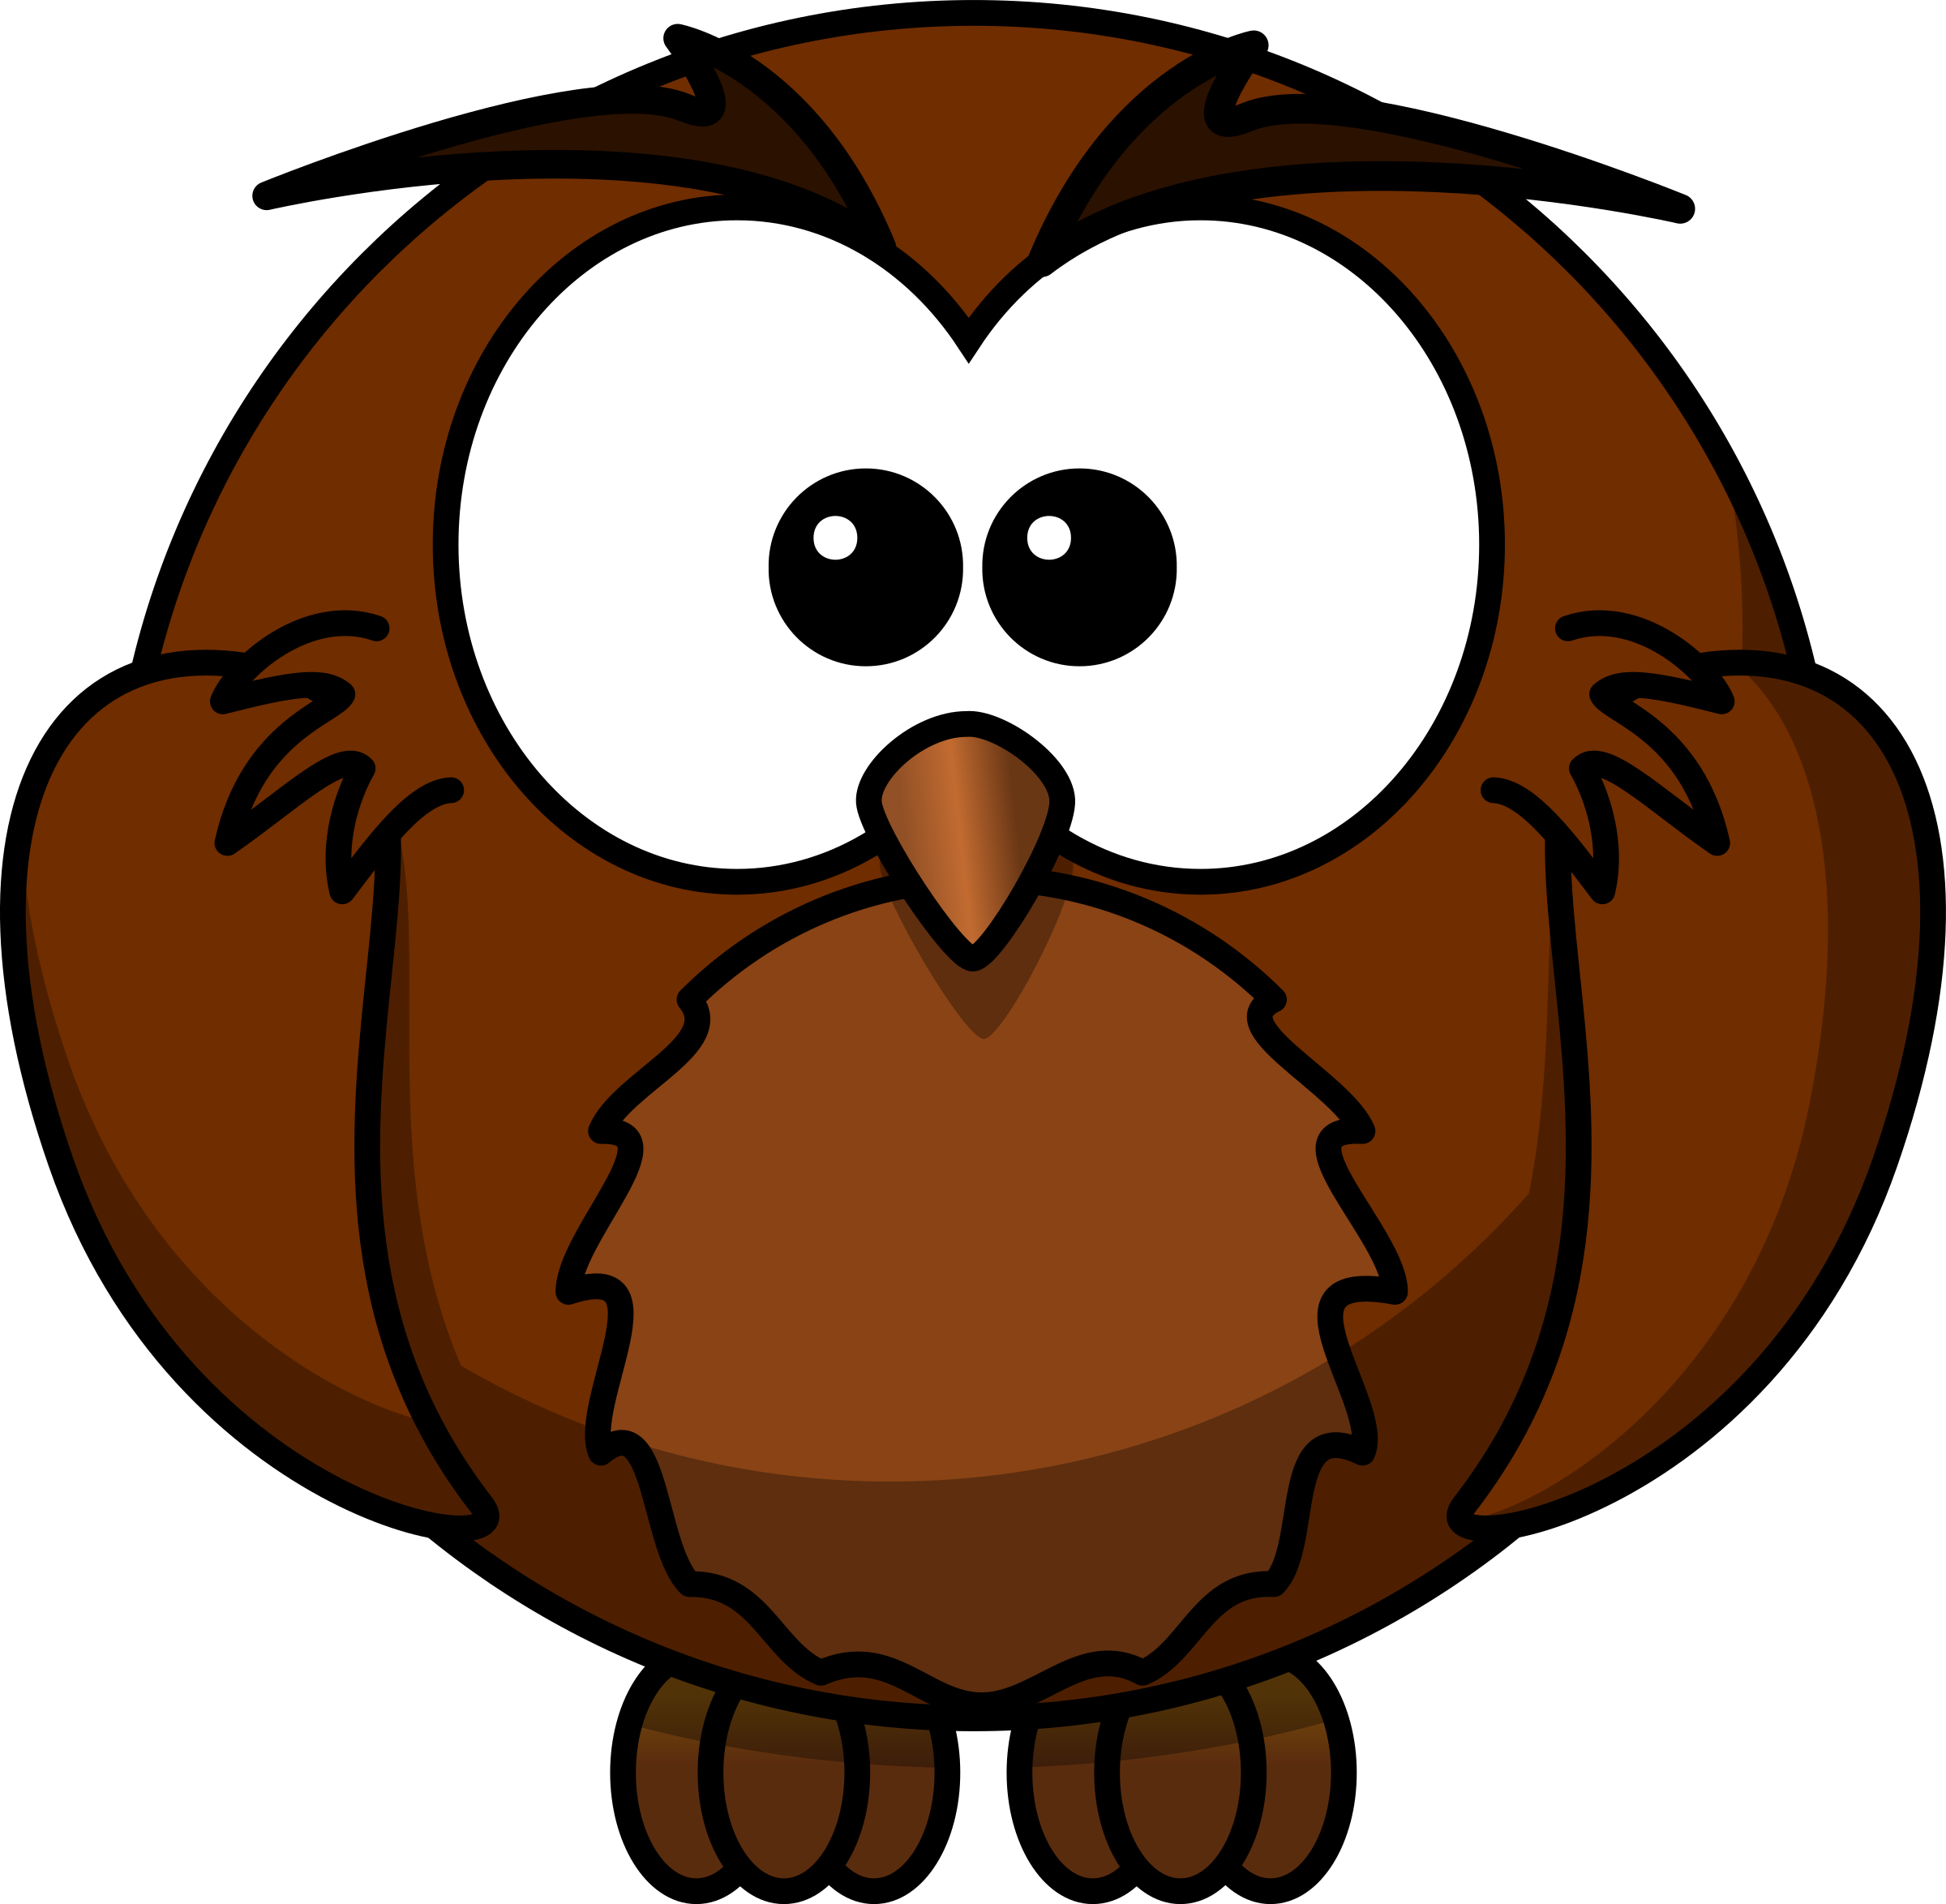 Years clipart owl. Wise cartoon who has